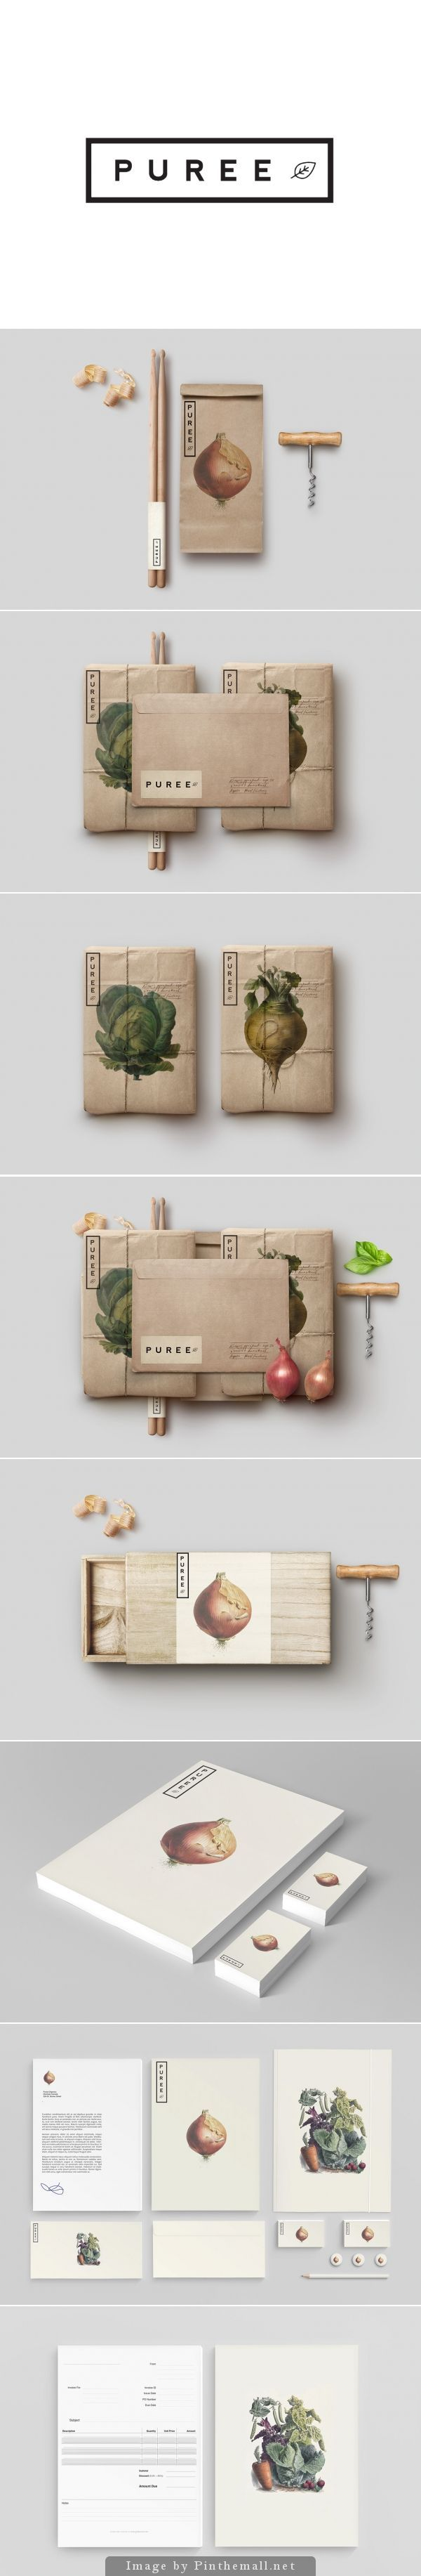 Food design by Studioahamed | Branding | Pinterest